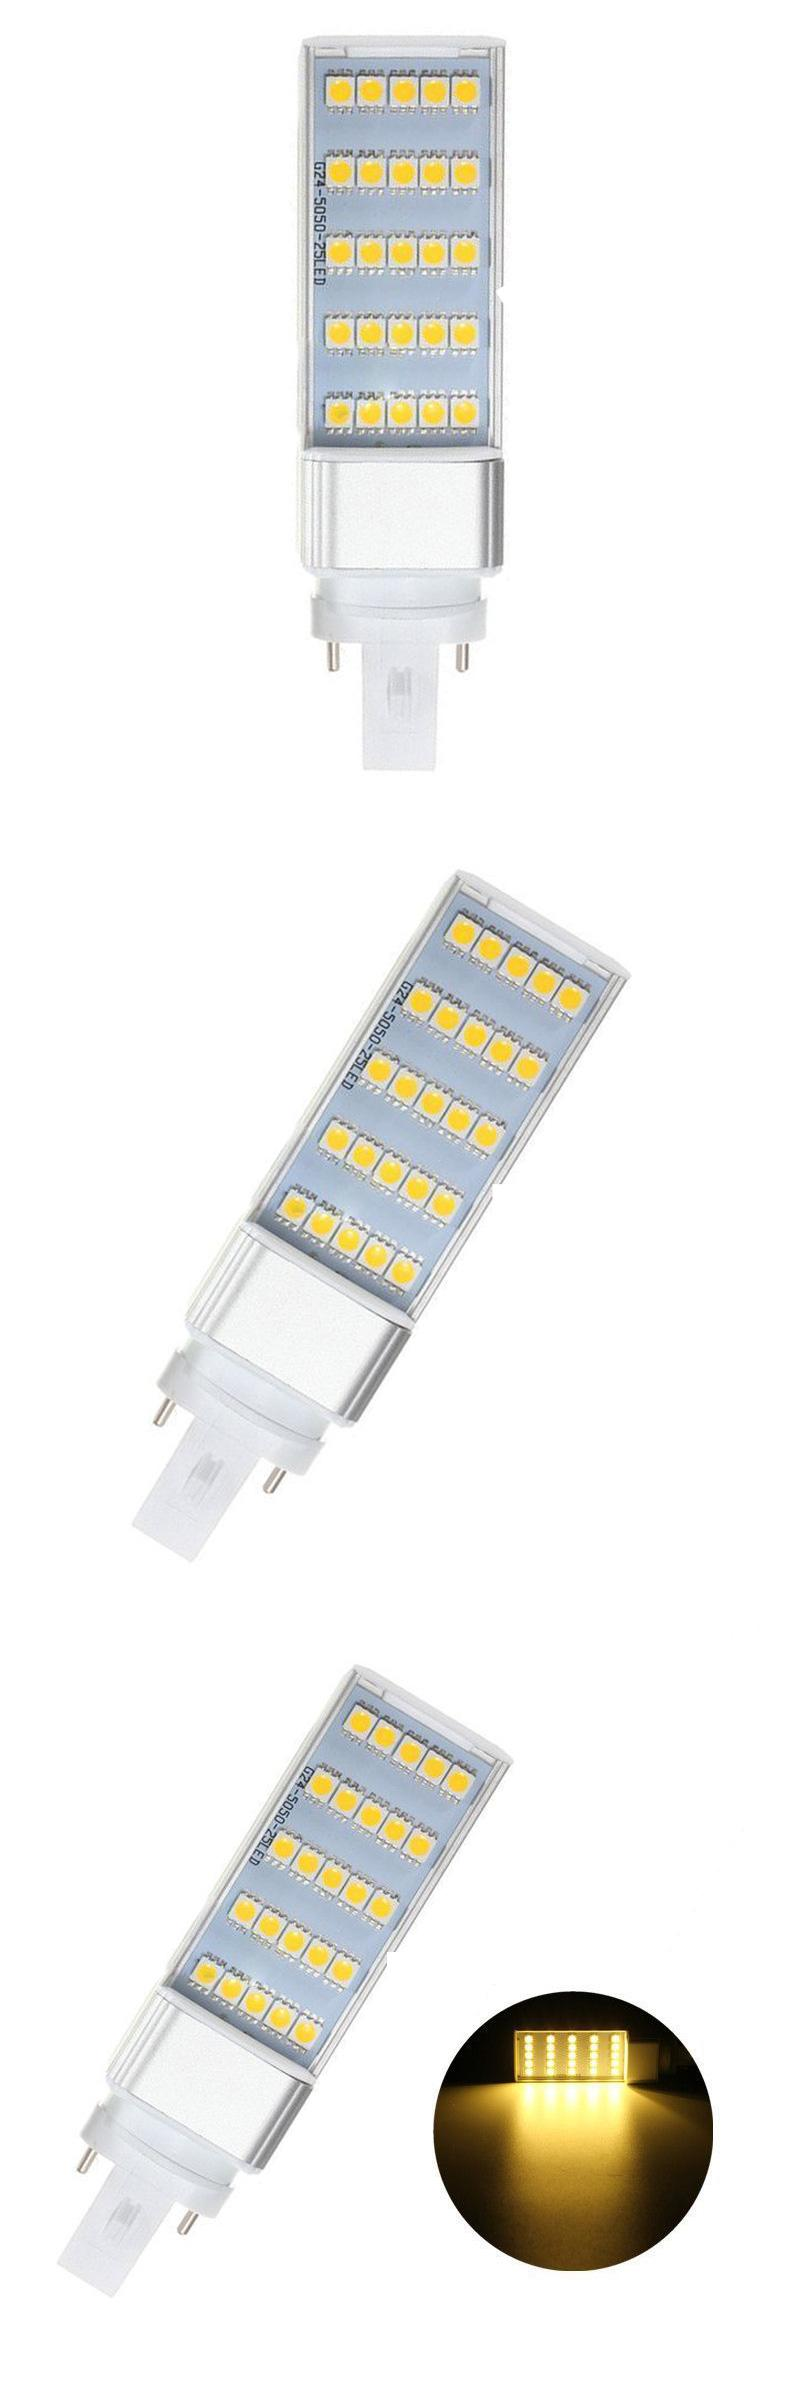 Visit To Buy G23 5w 5050 Smd White Led Horizontal Plug Lamp Corn Home Ceiling Warm White Light Advertisement With Images Home Ceiling White Light White Lead